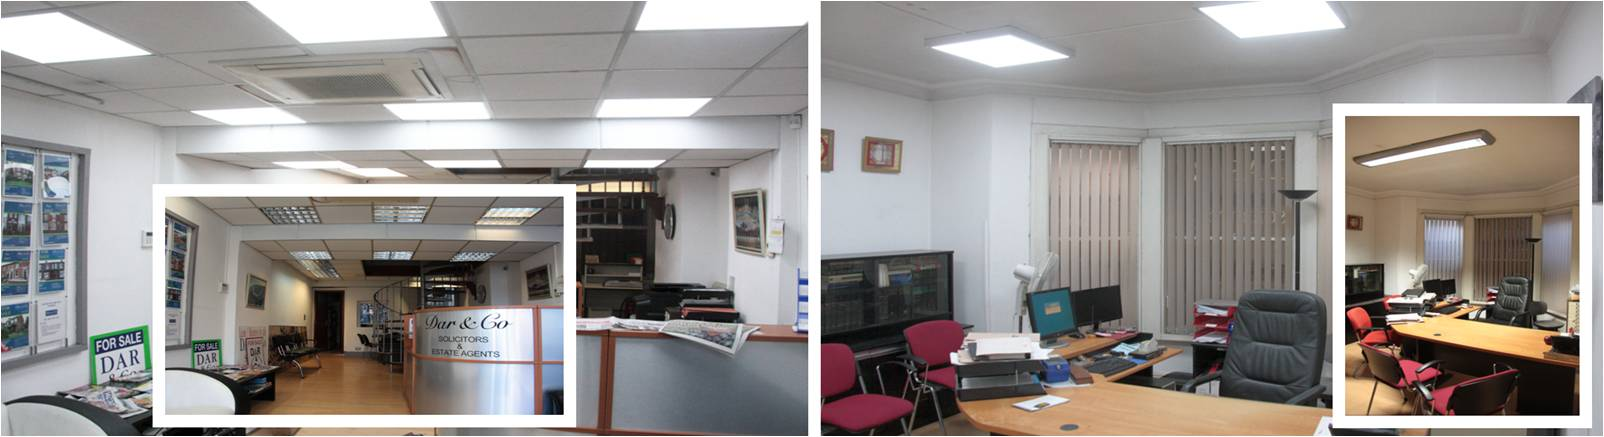 LED Distribution | Projects | Office (DAR&Co Solicitors) | Manchester, England